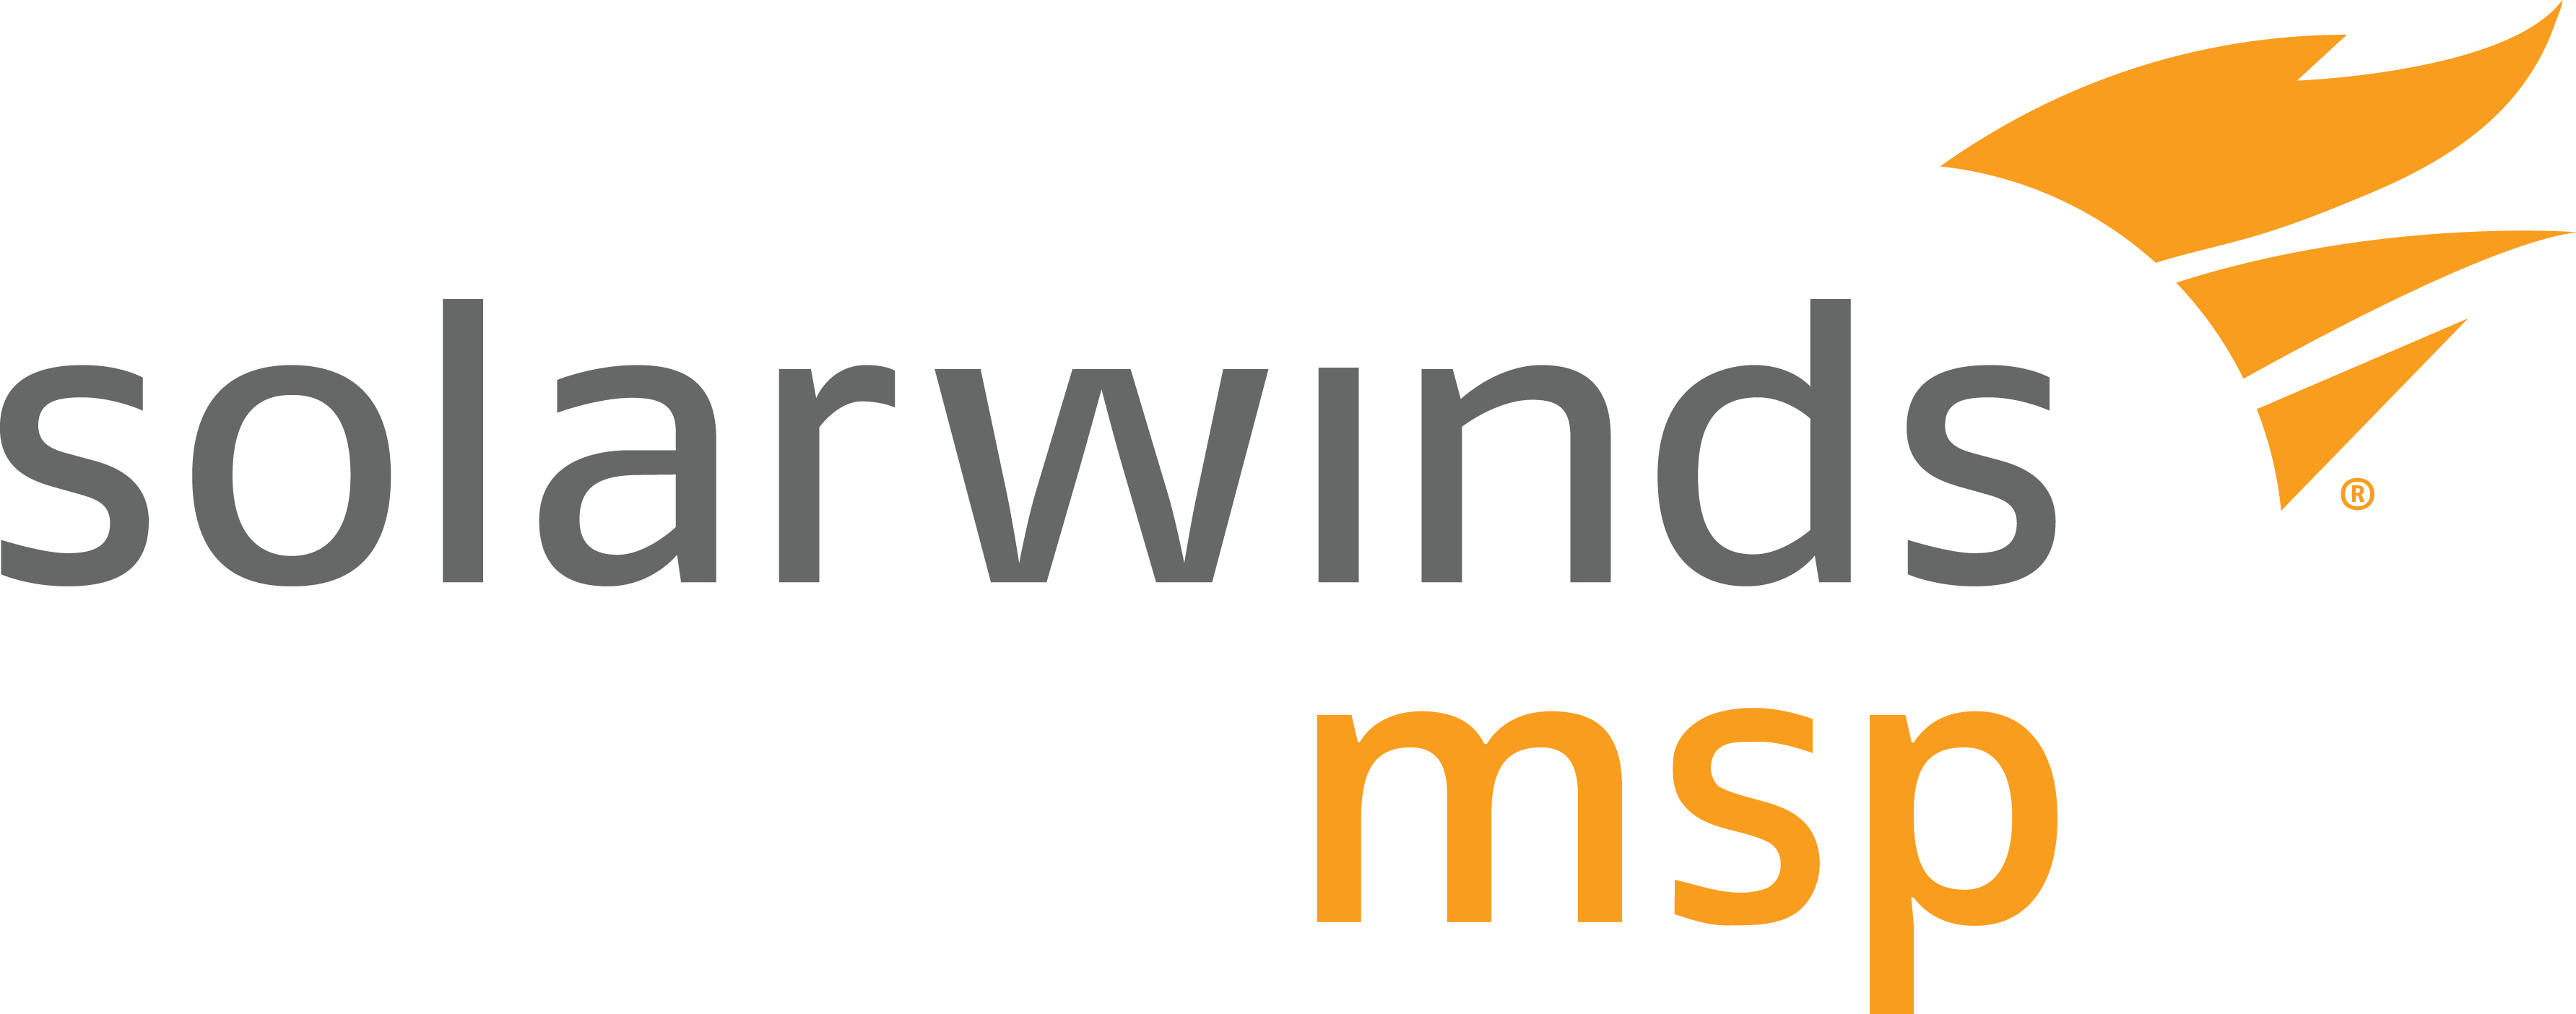 SolarWinds_MSP_Logo_Full_Colour